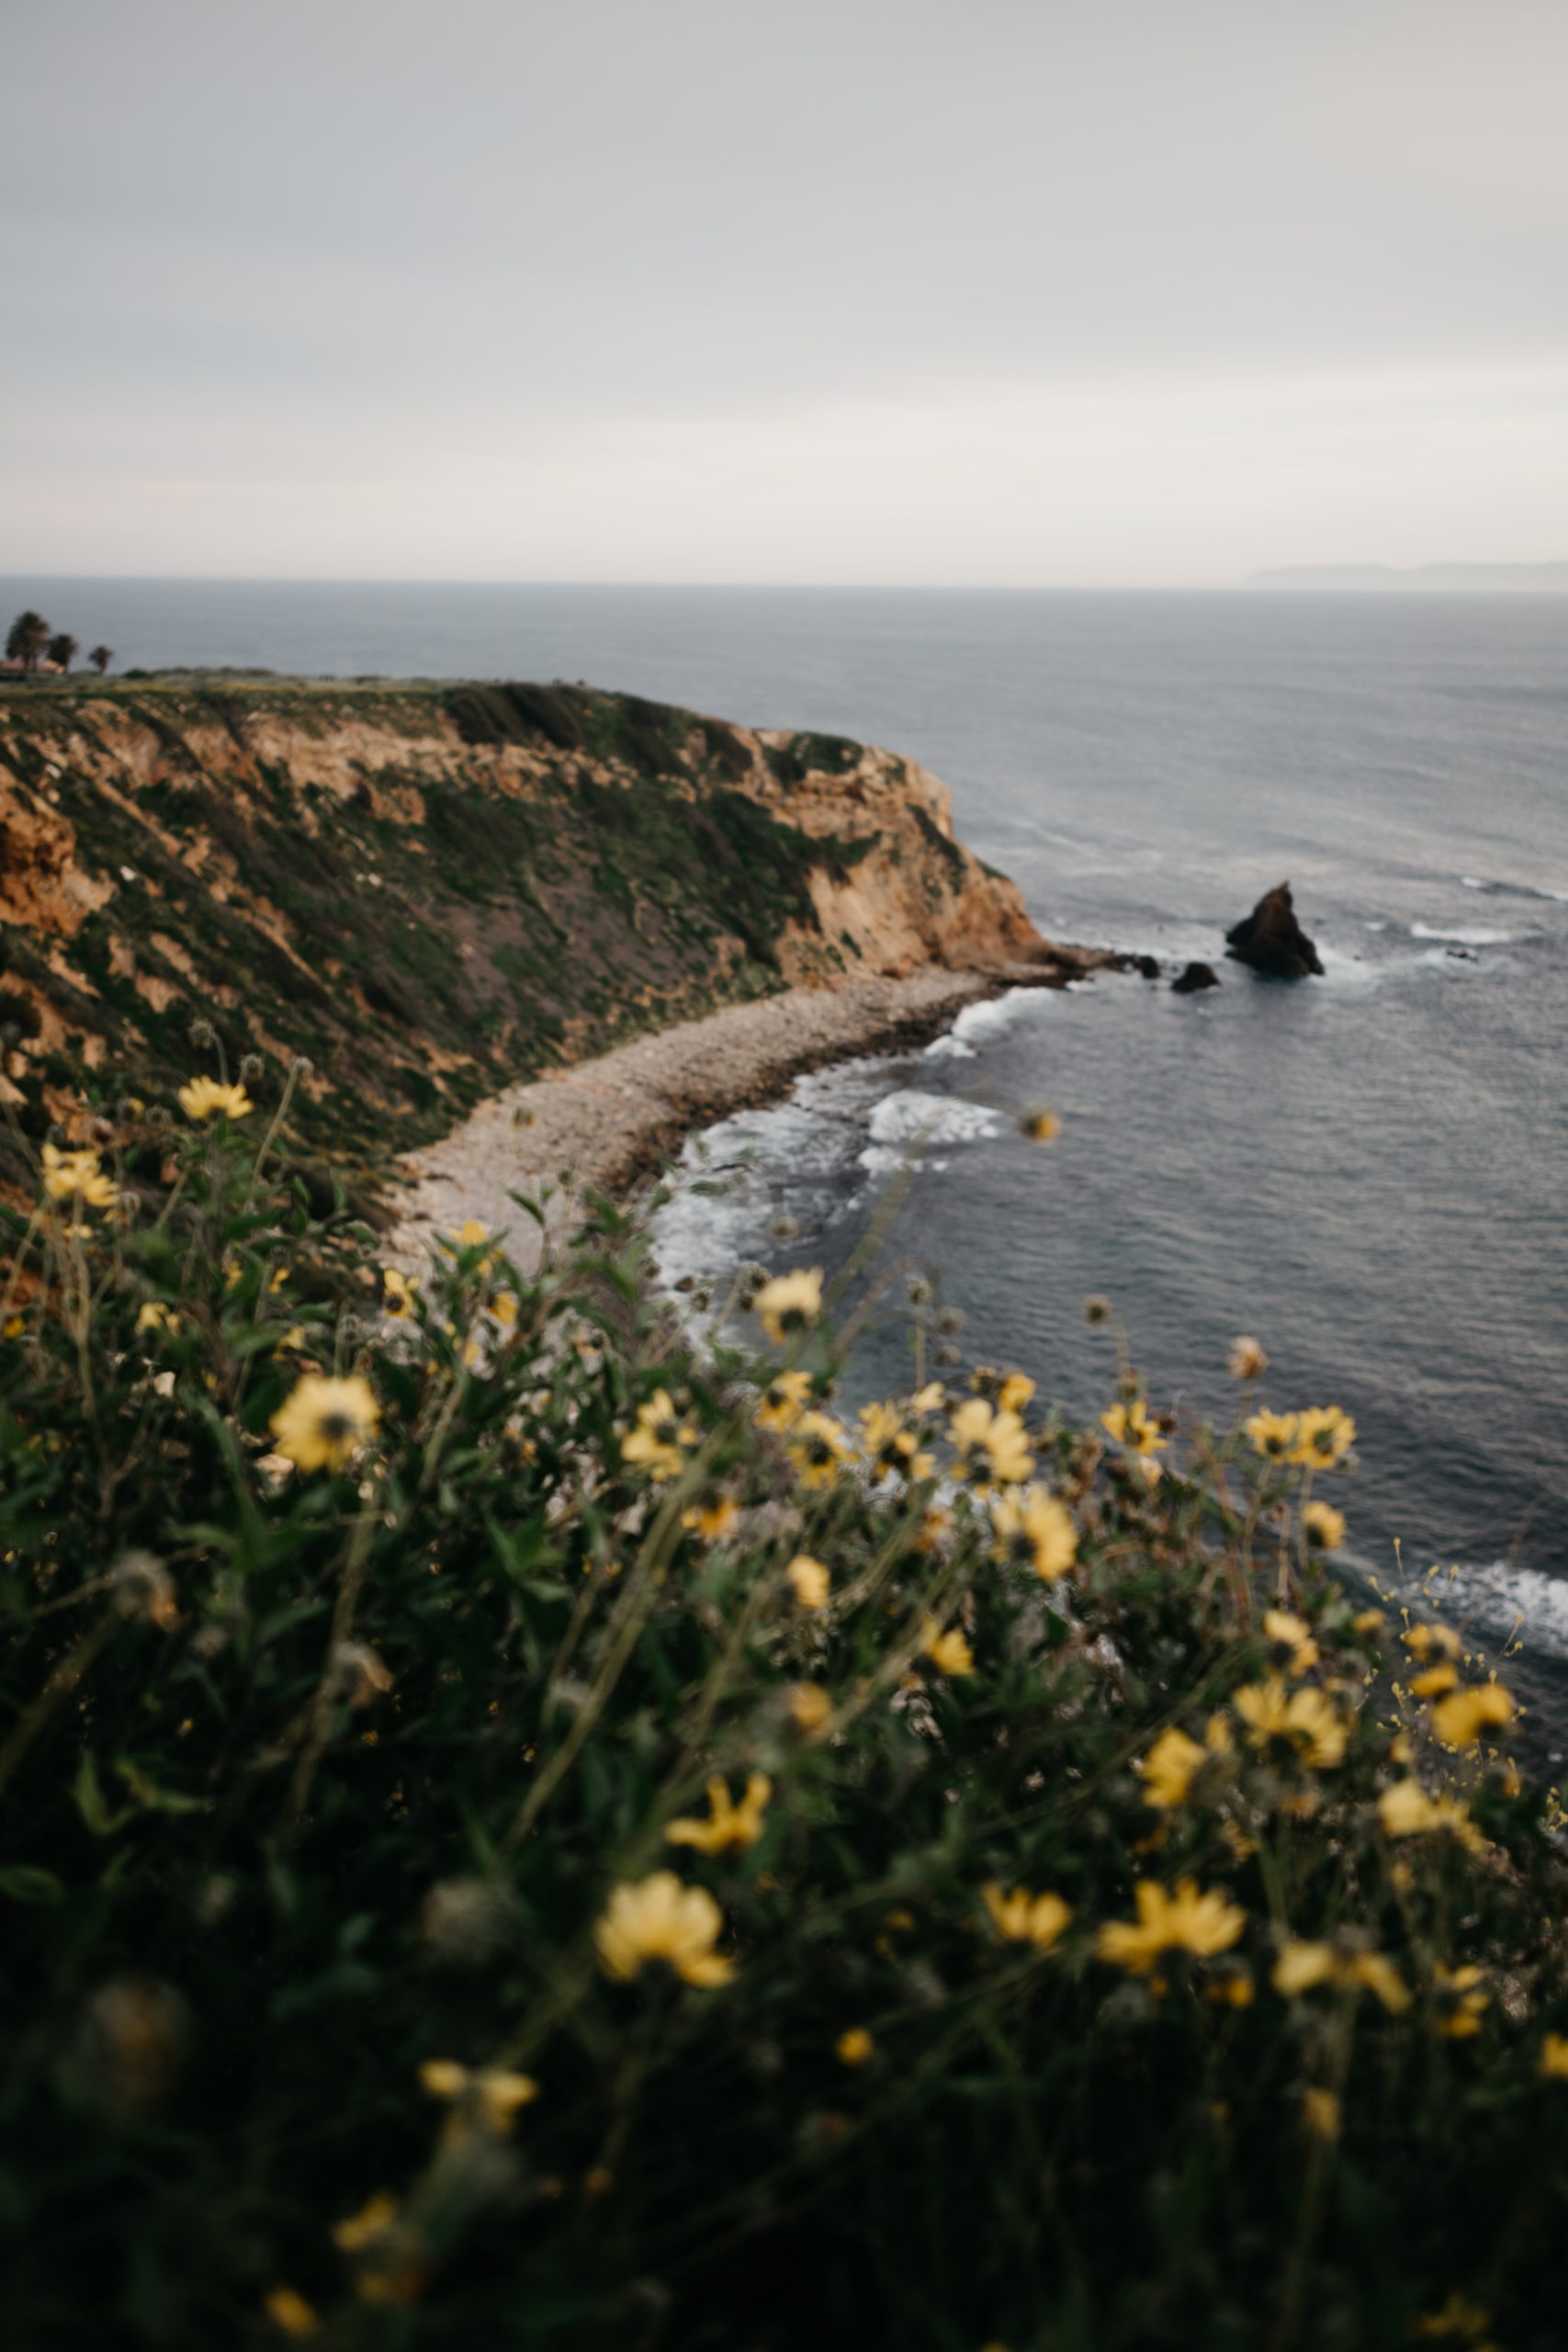 Palos Verdes Coast Wallpaper, image by Fatima Elreda Photo